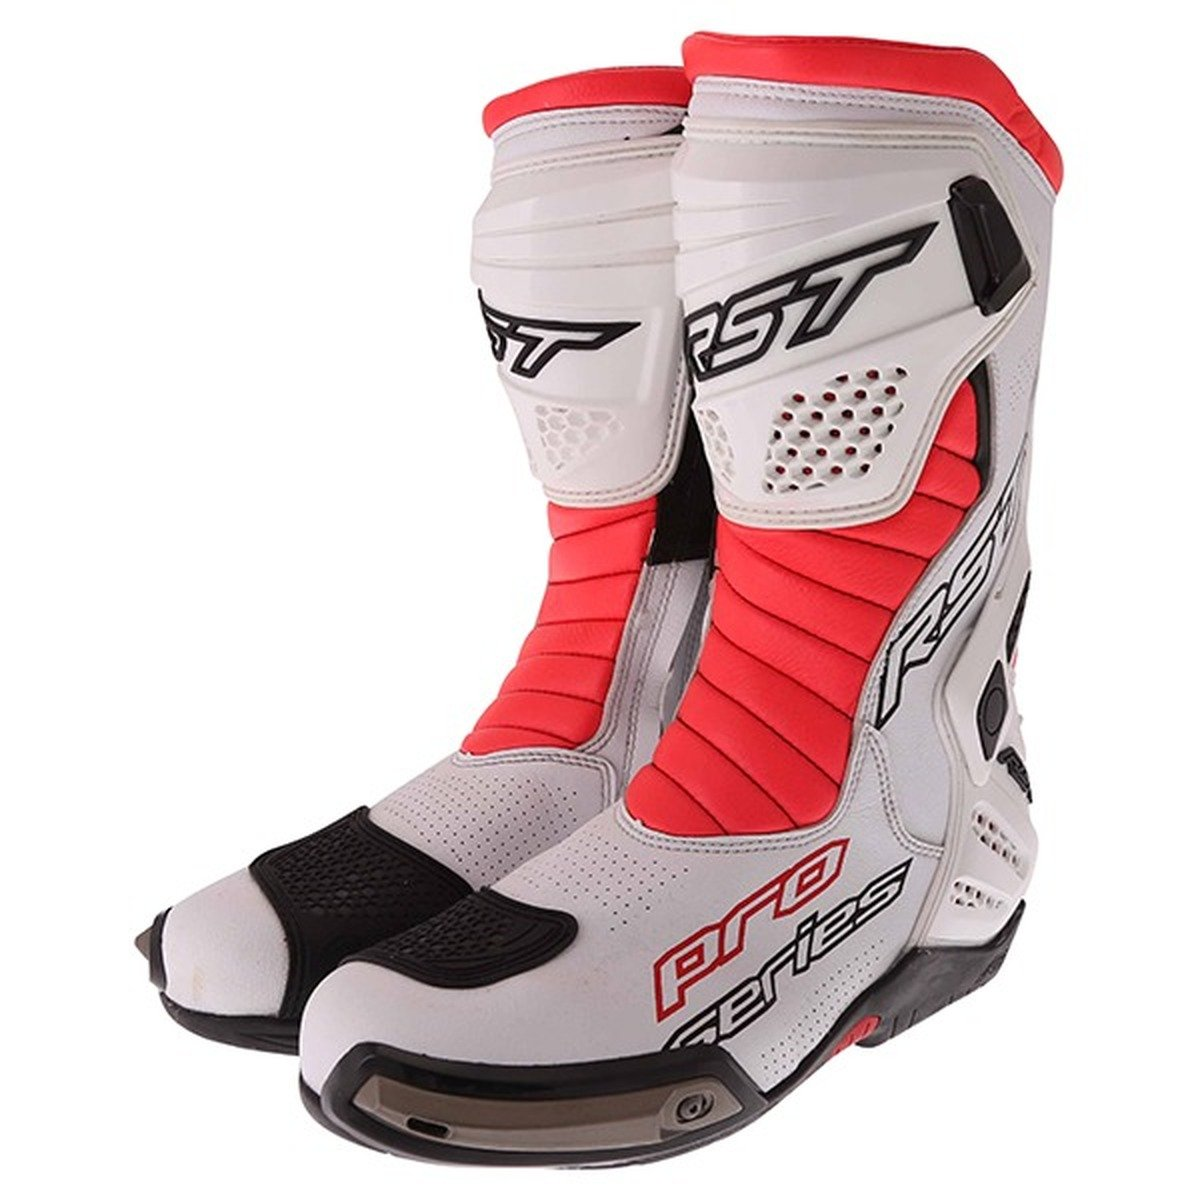 RST Pro Series 1503 Race CE Boots in Red